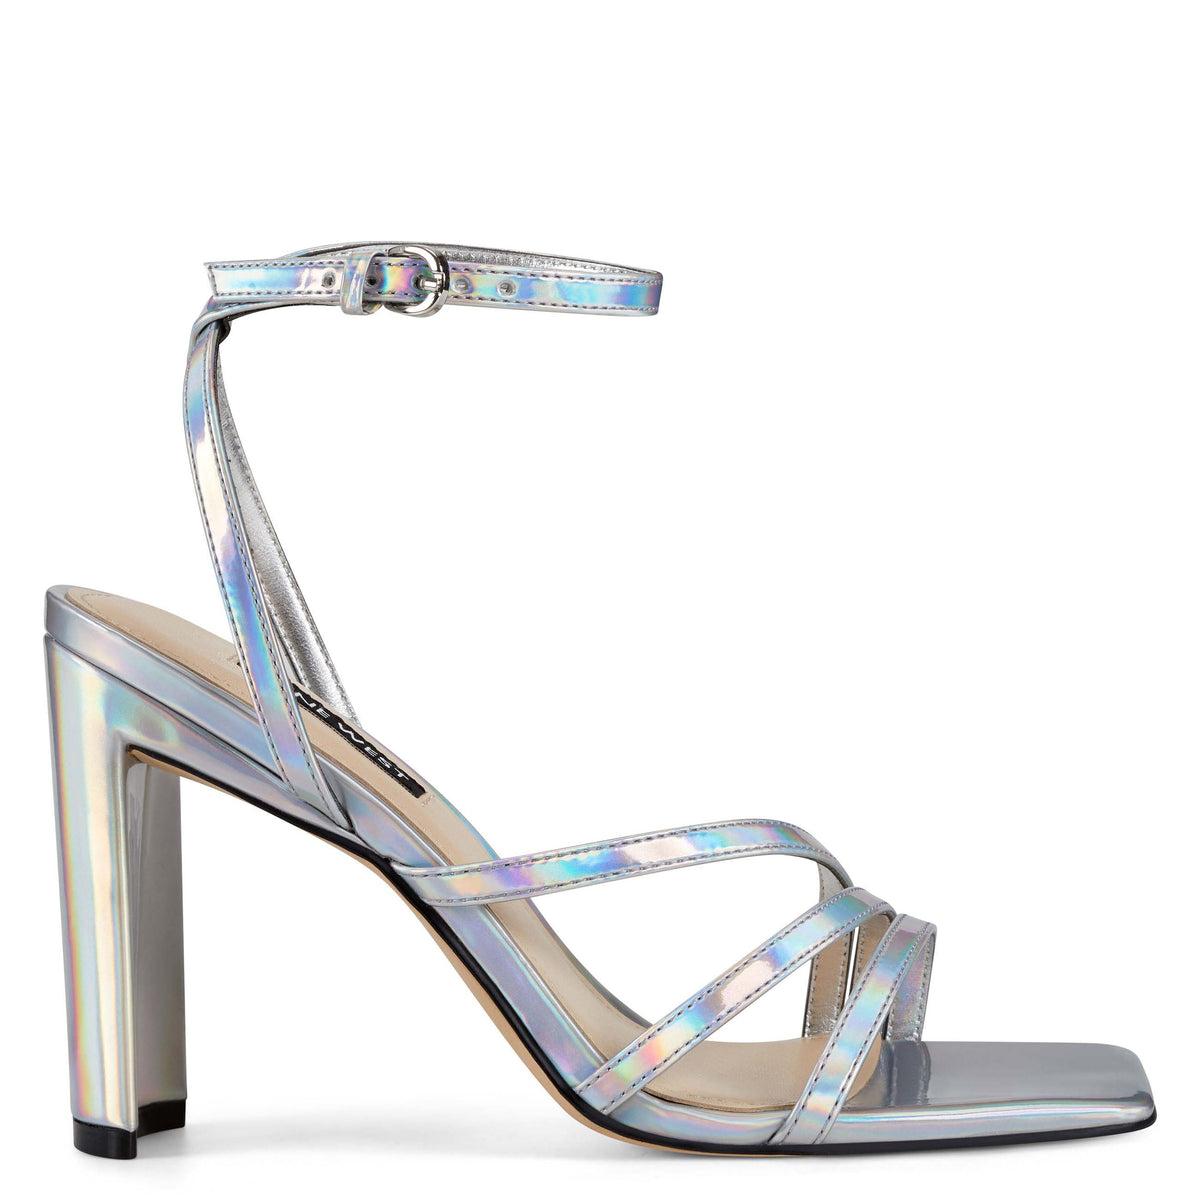 zelina-heeled-strappy-sandals-in-iridescent